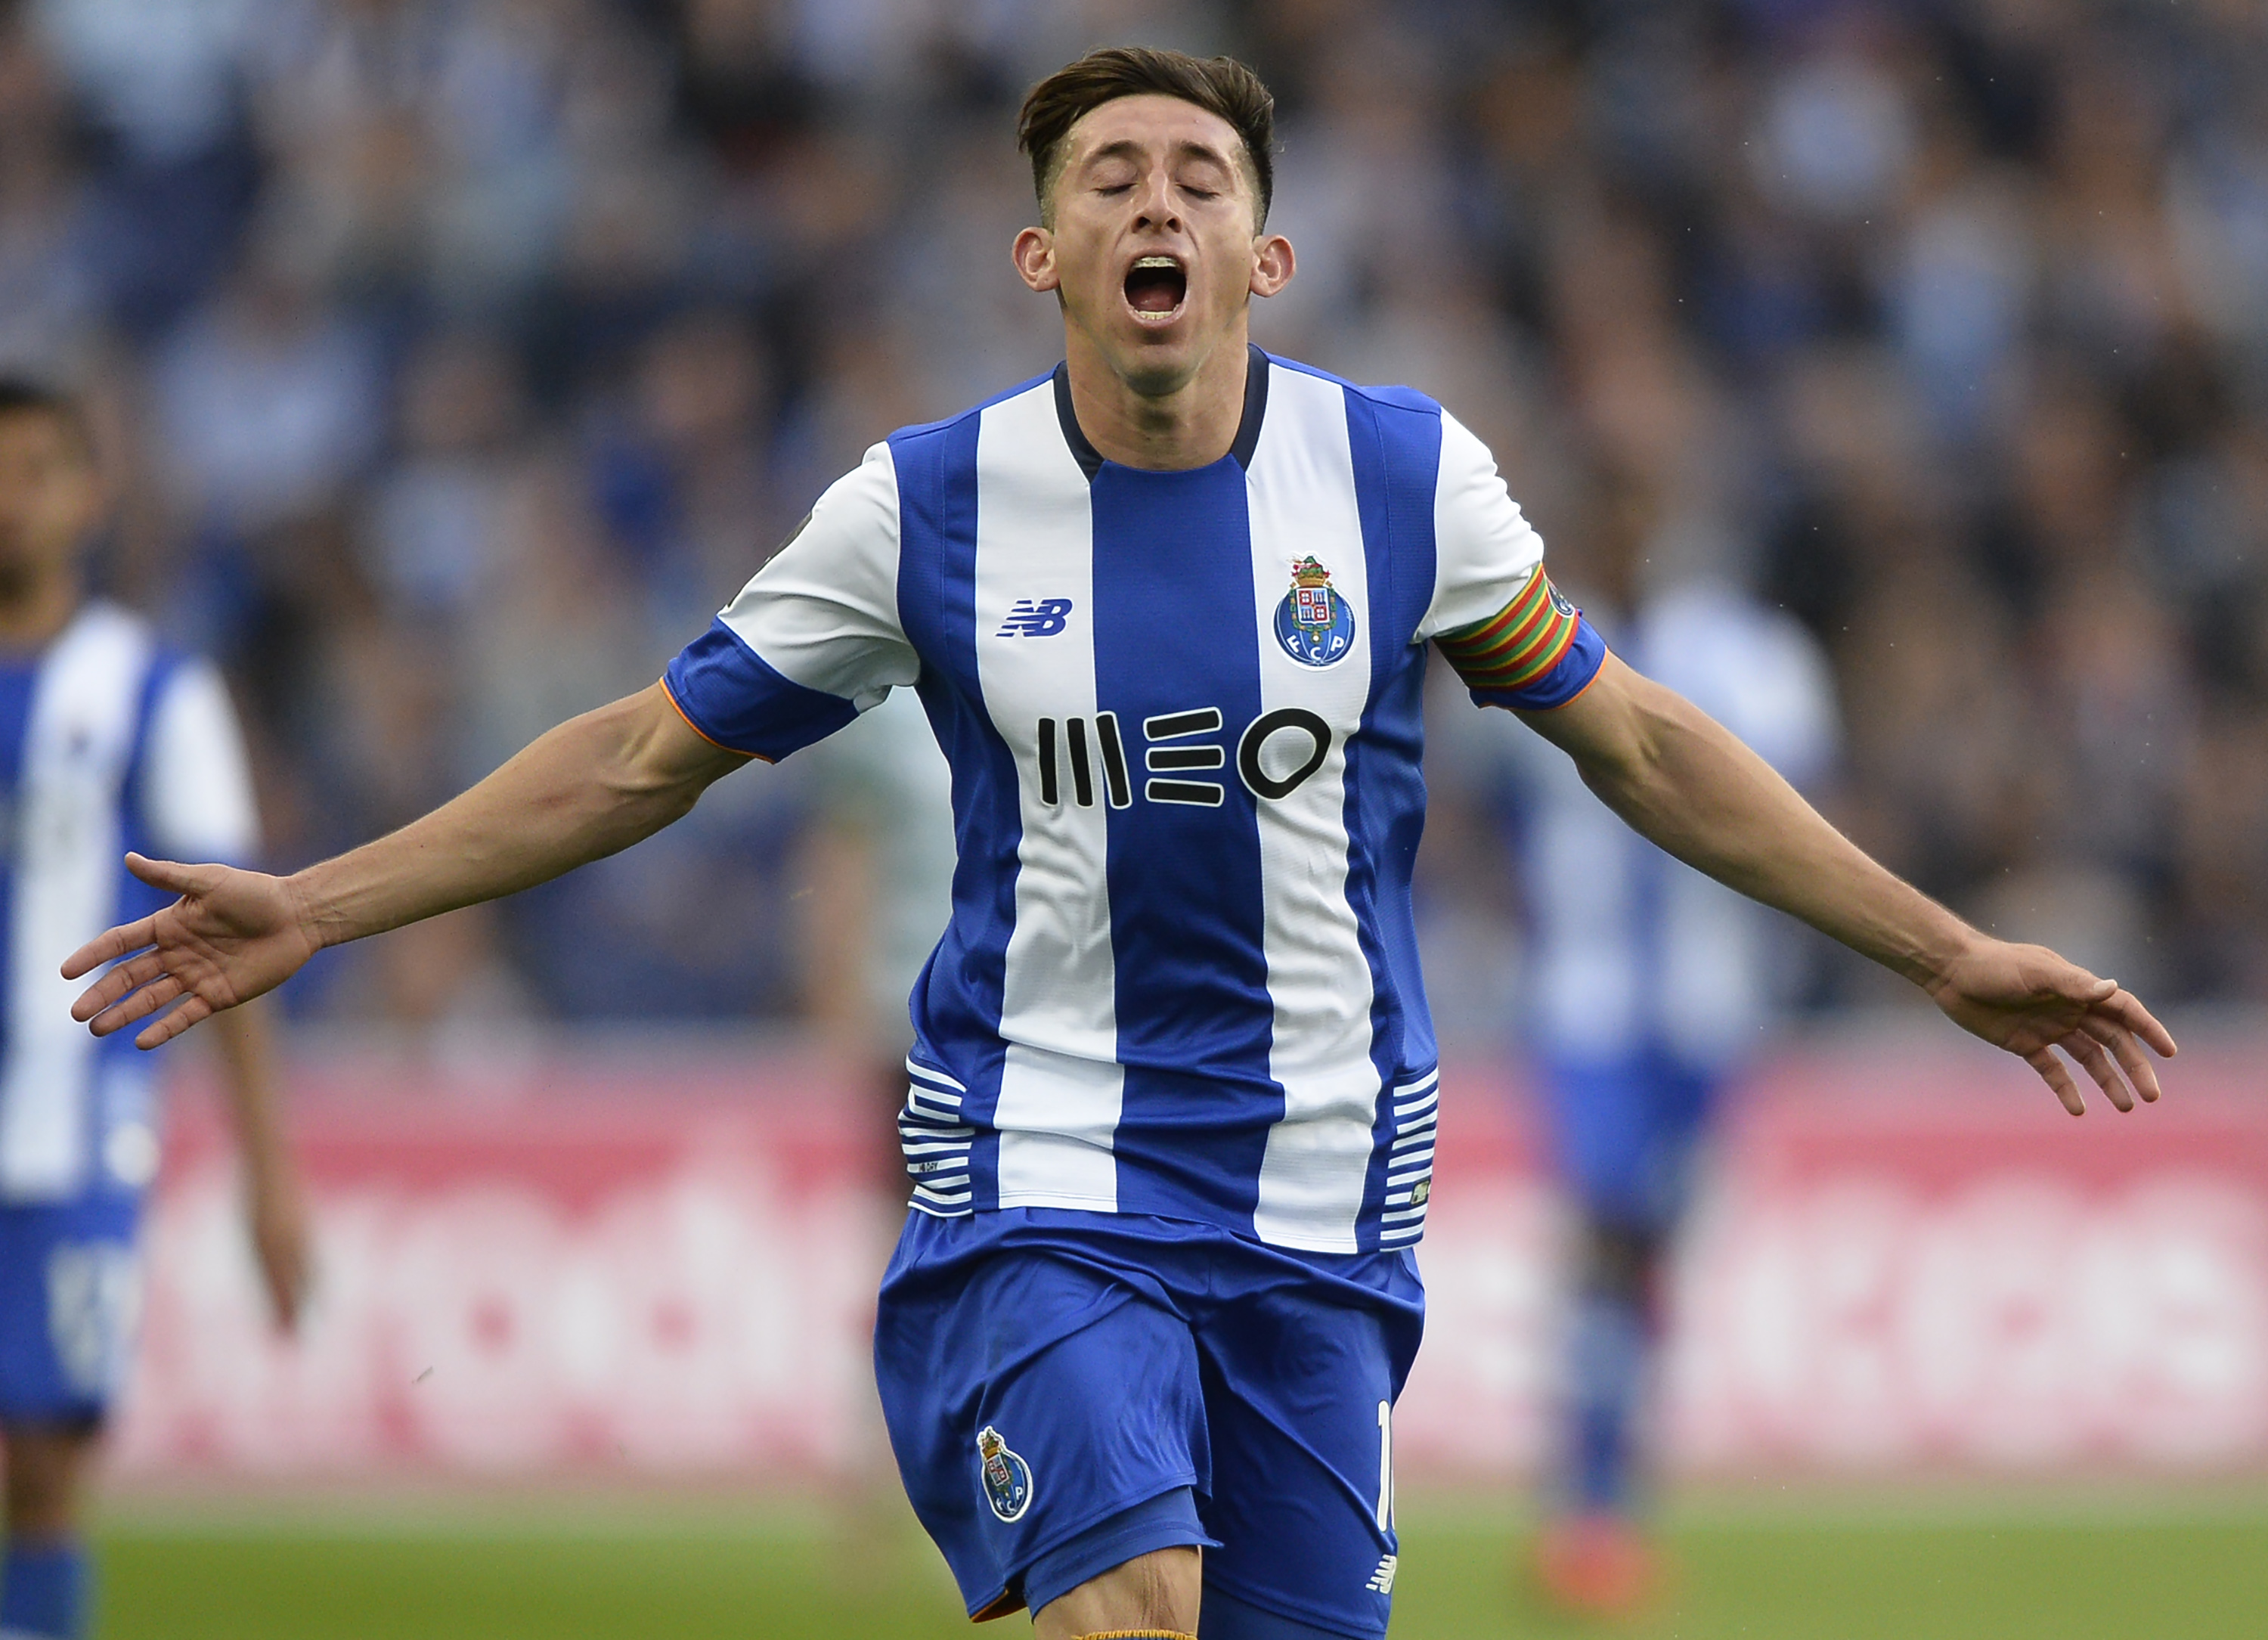 Liverpool transfer news: Reds continue to monitor Porto midfielder Hector Hererra